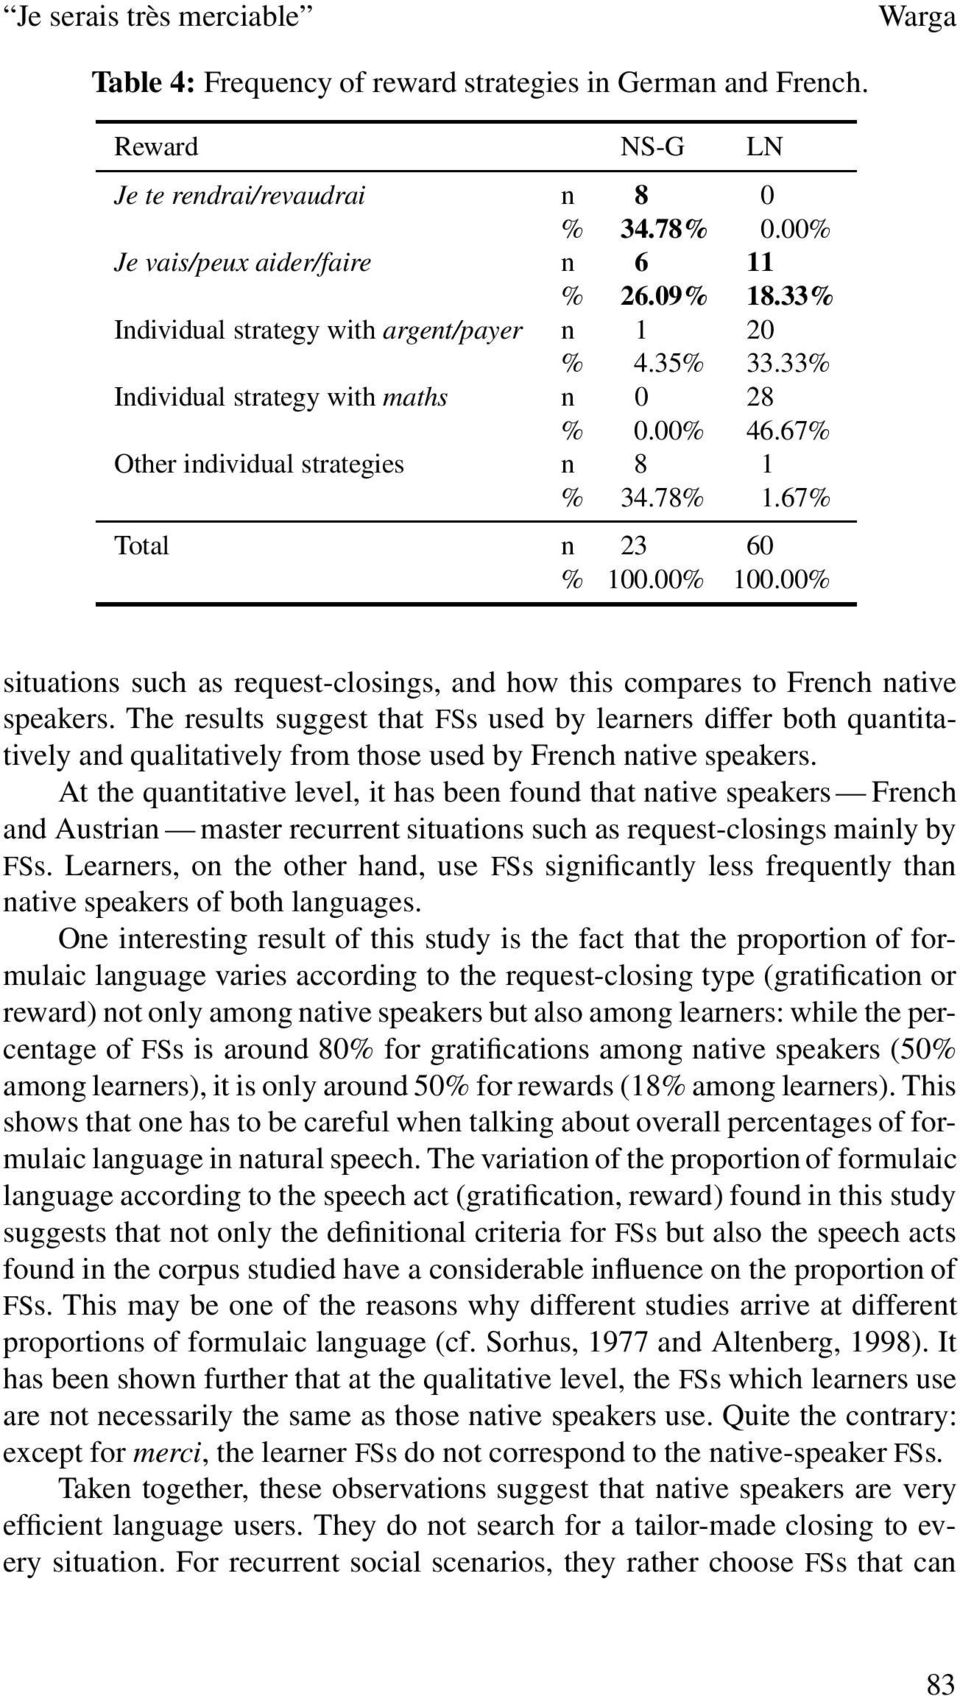 00% situations such as request-closings, and how this compares to French native speakers.